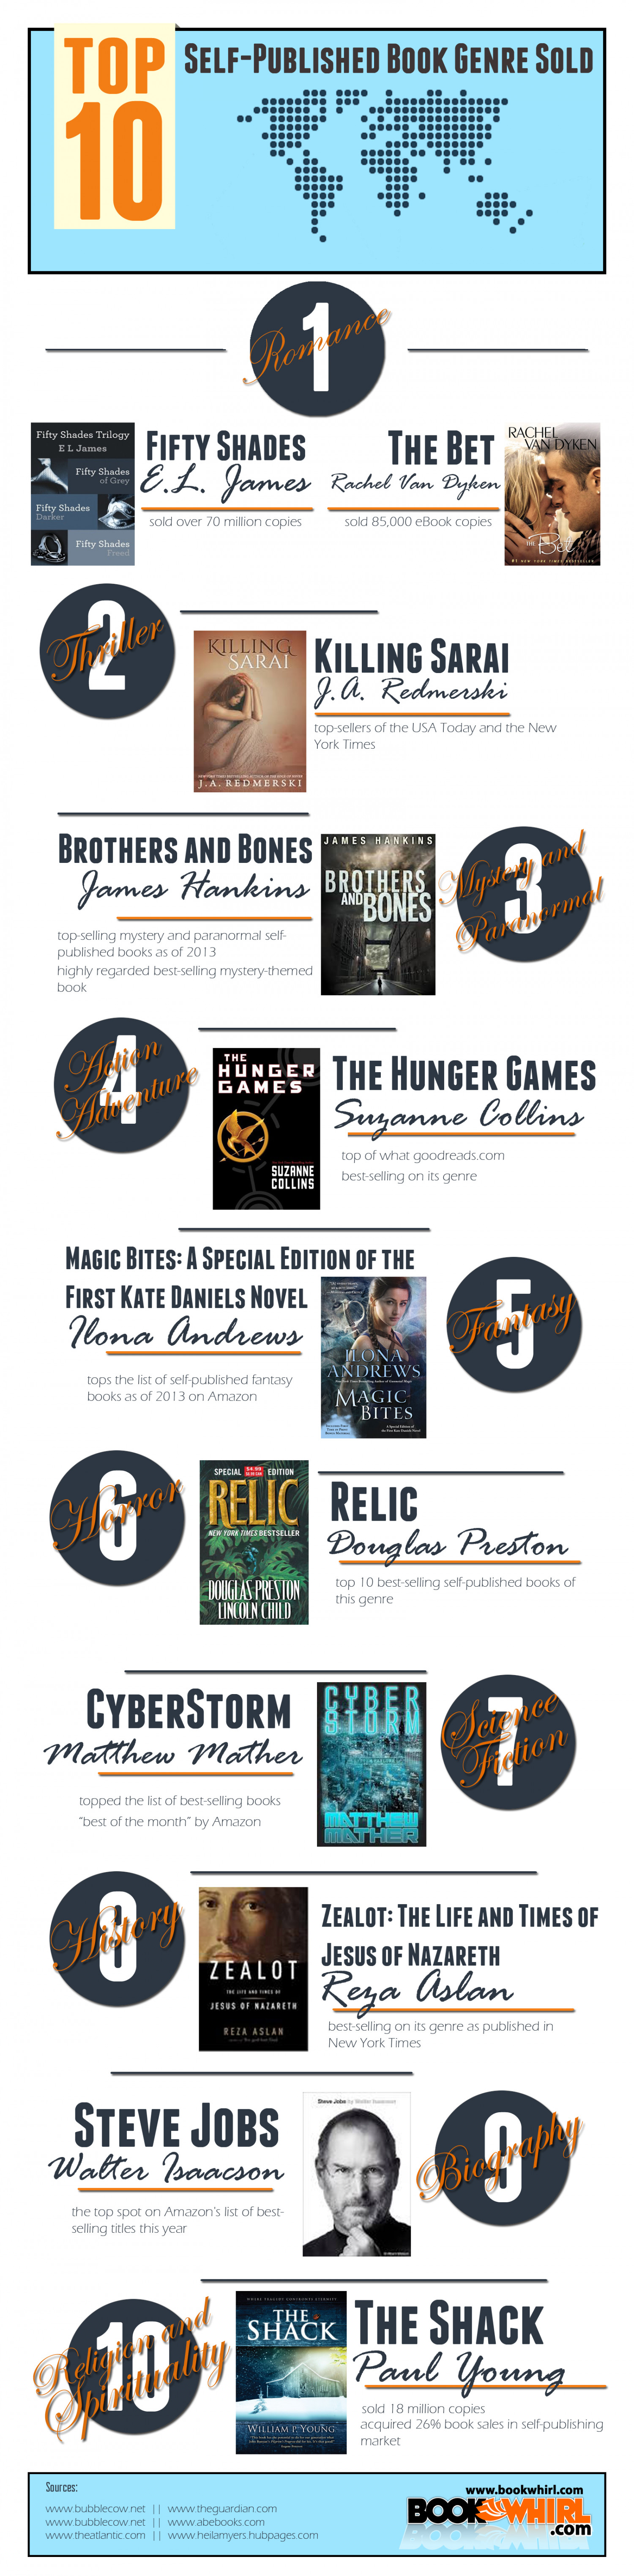 Top 10 Self-Published Book Genre Sold Infographic